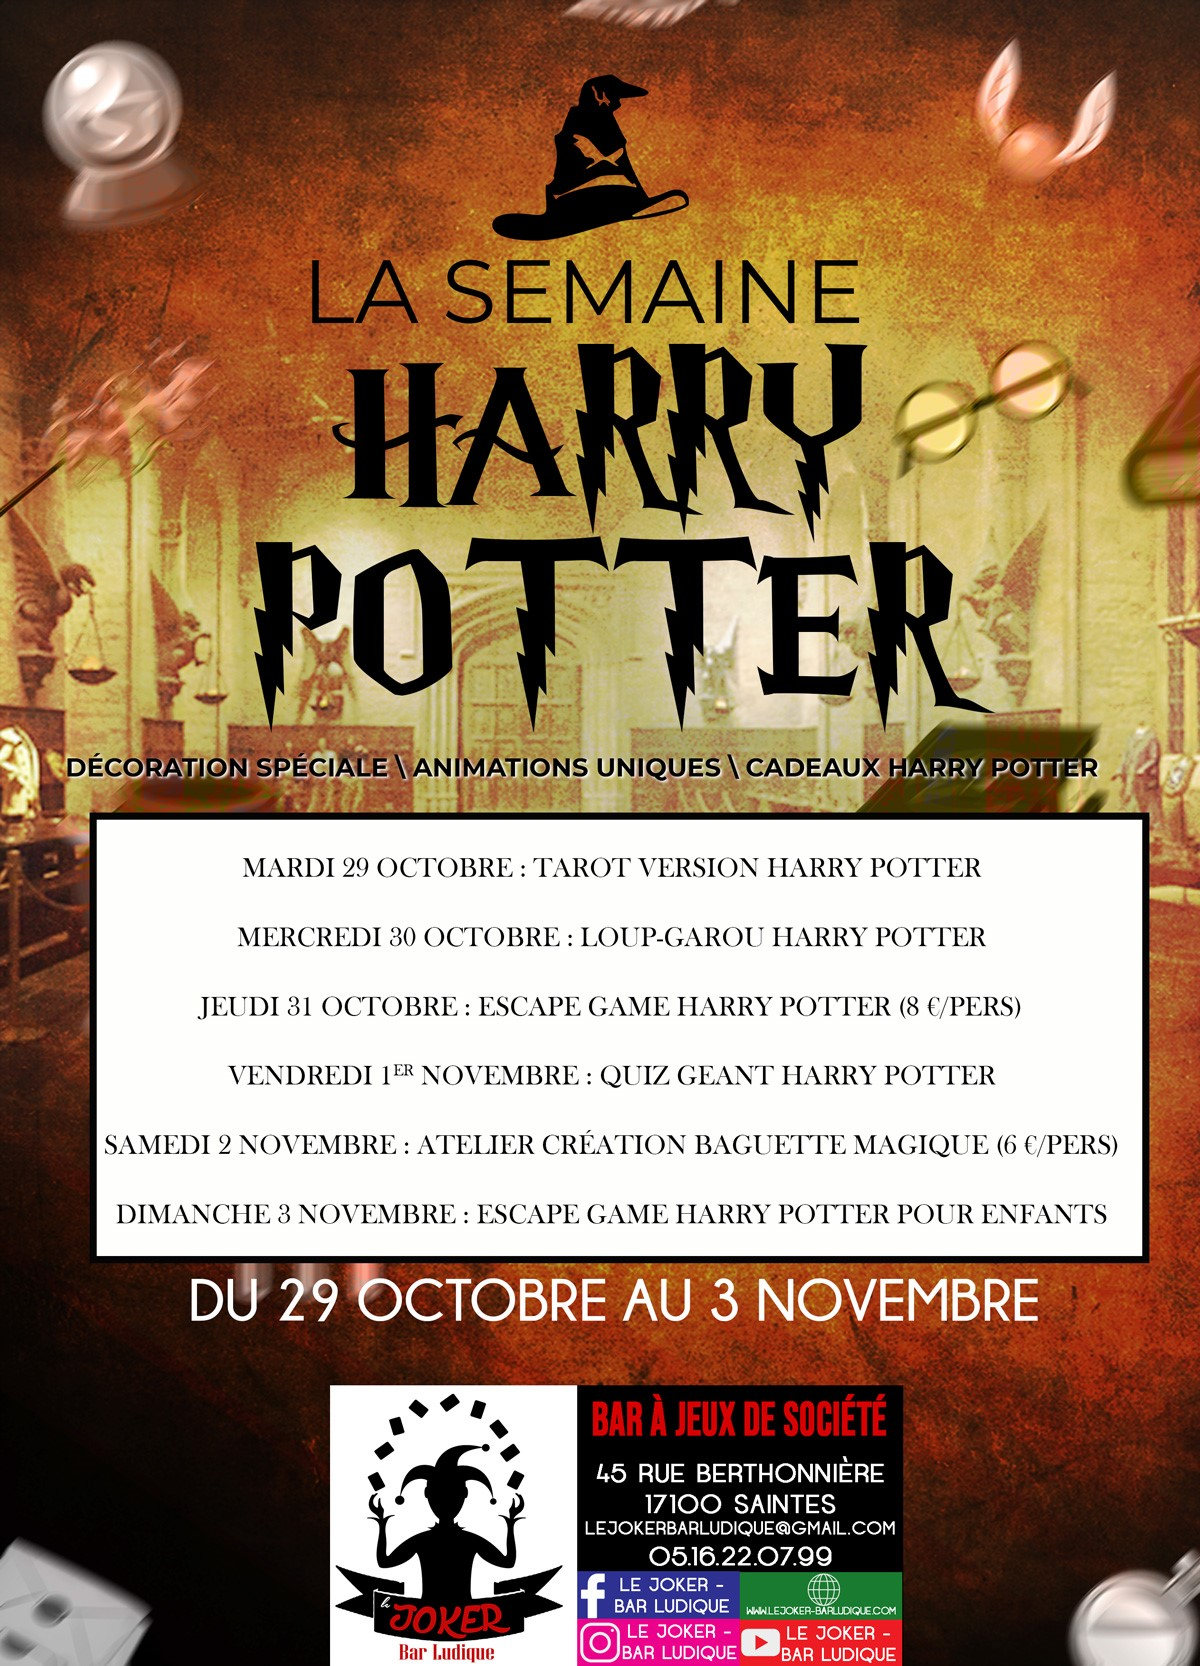 La semaine Harry Potter